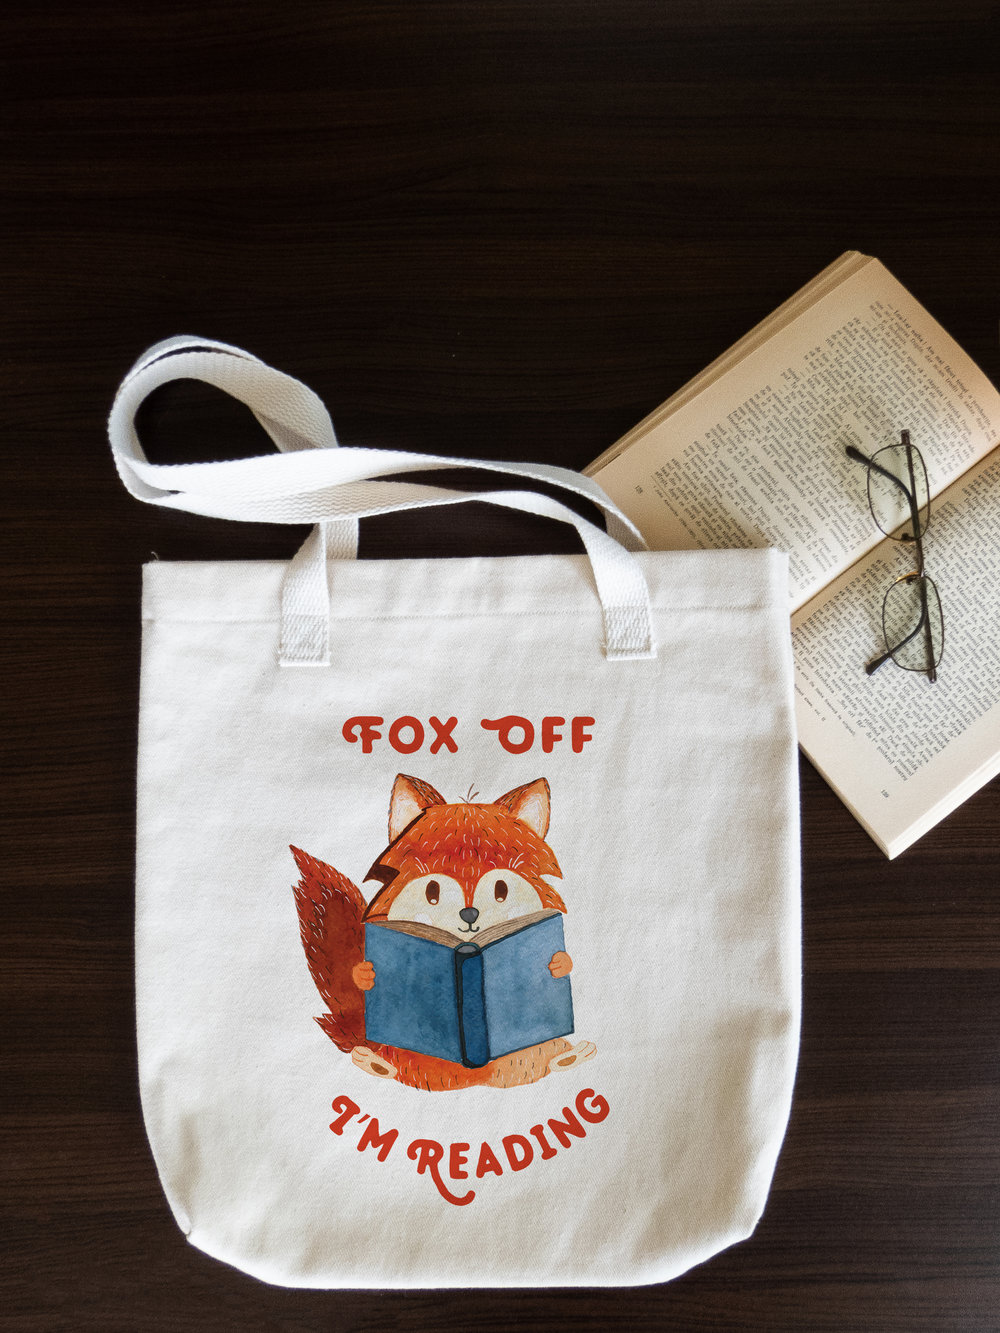 fox off i am reading tote bag - natural cotton tote bag - eco friendly